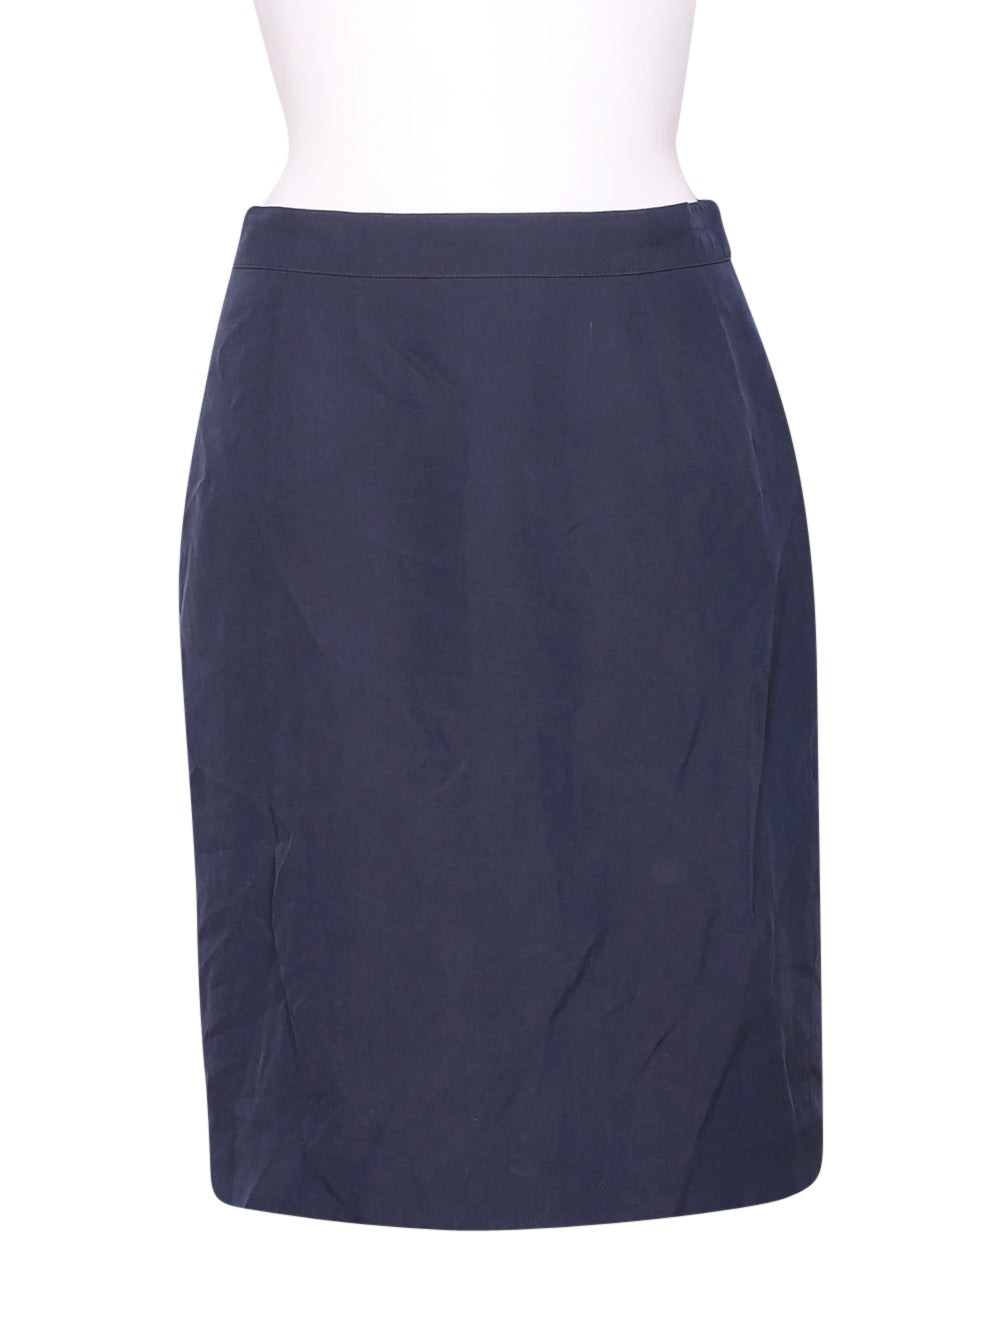 Front photo of Preloved Marella Blue Woman's skirt - size 12/L